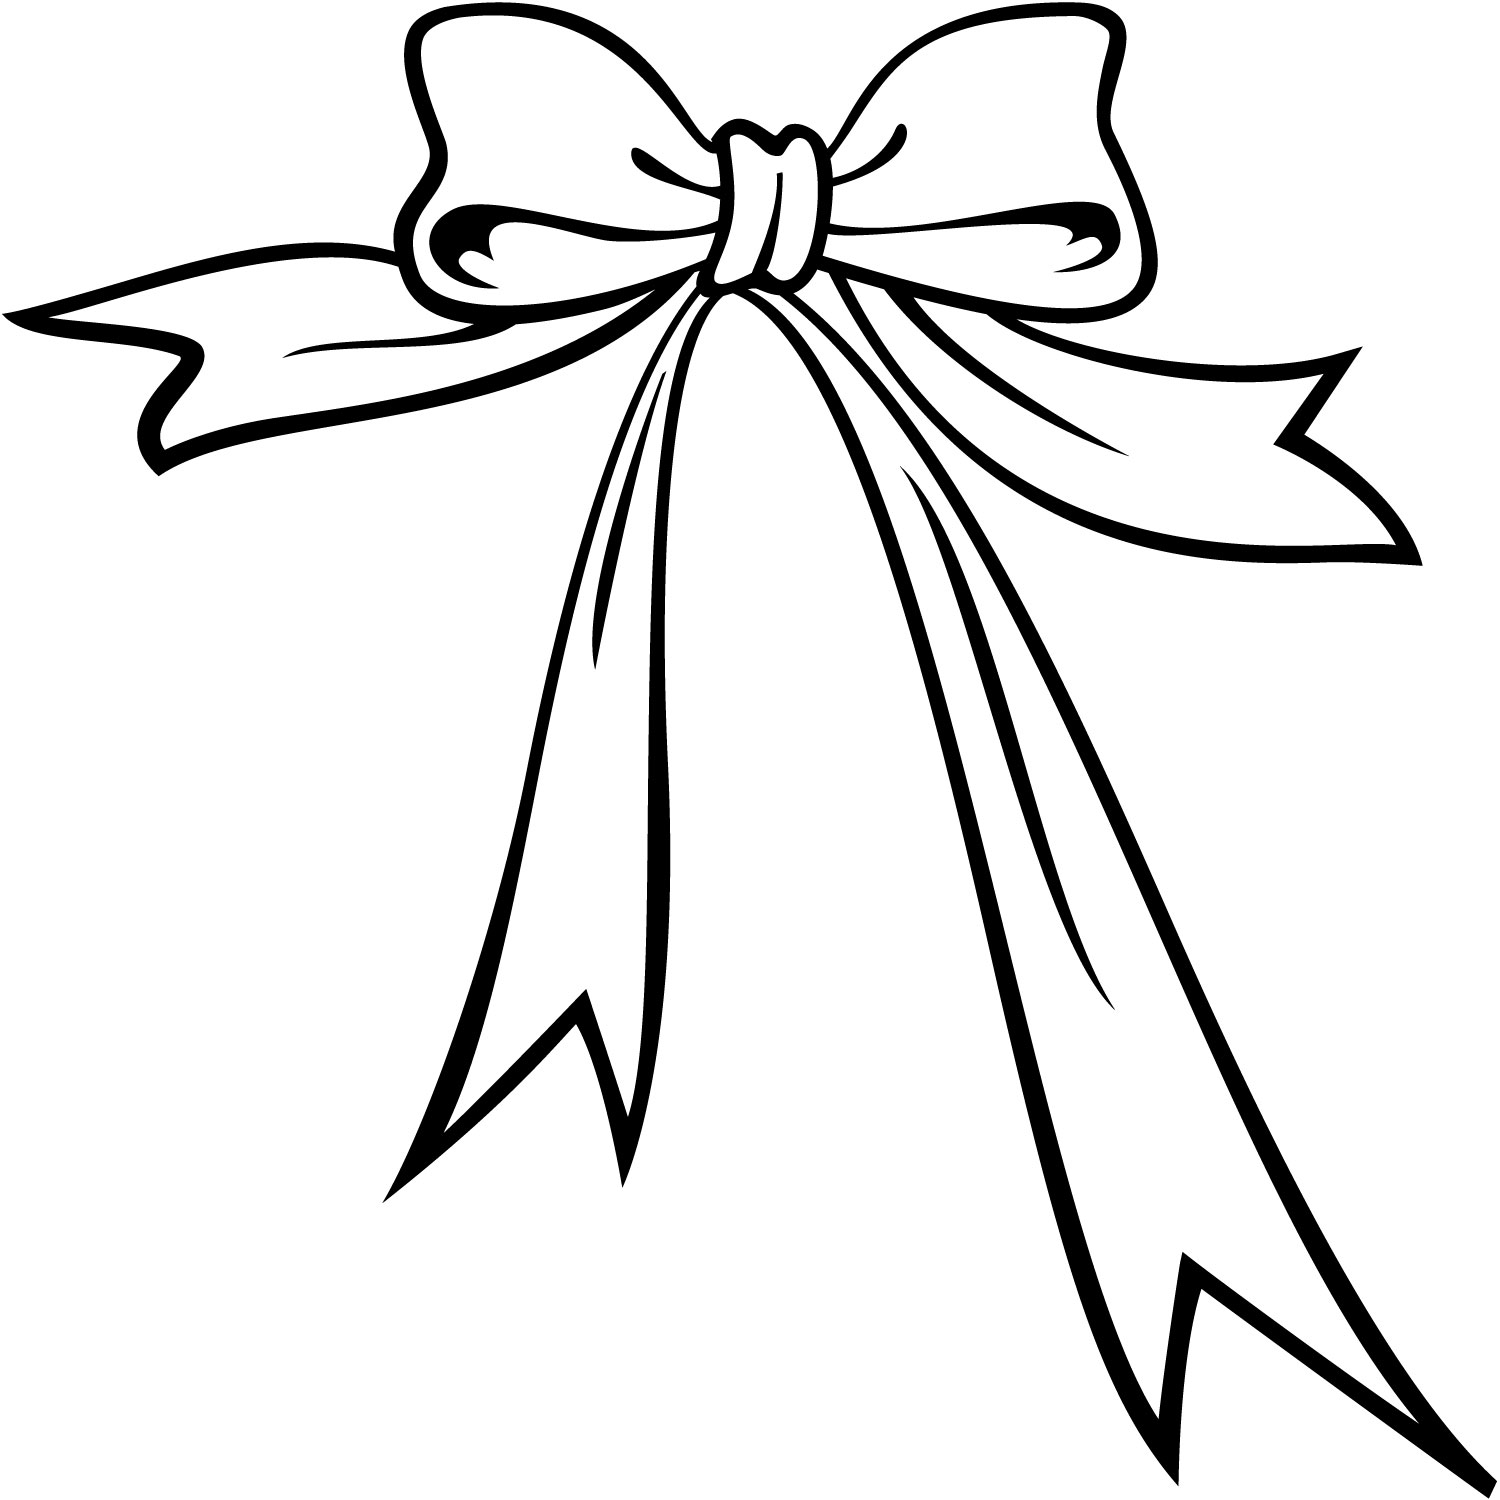 Free Ribbon Banner Clipart Download Free Clip Art Free